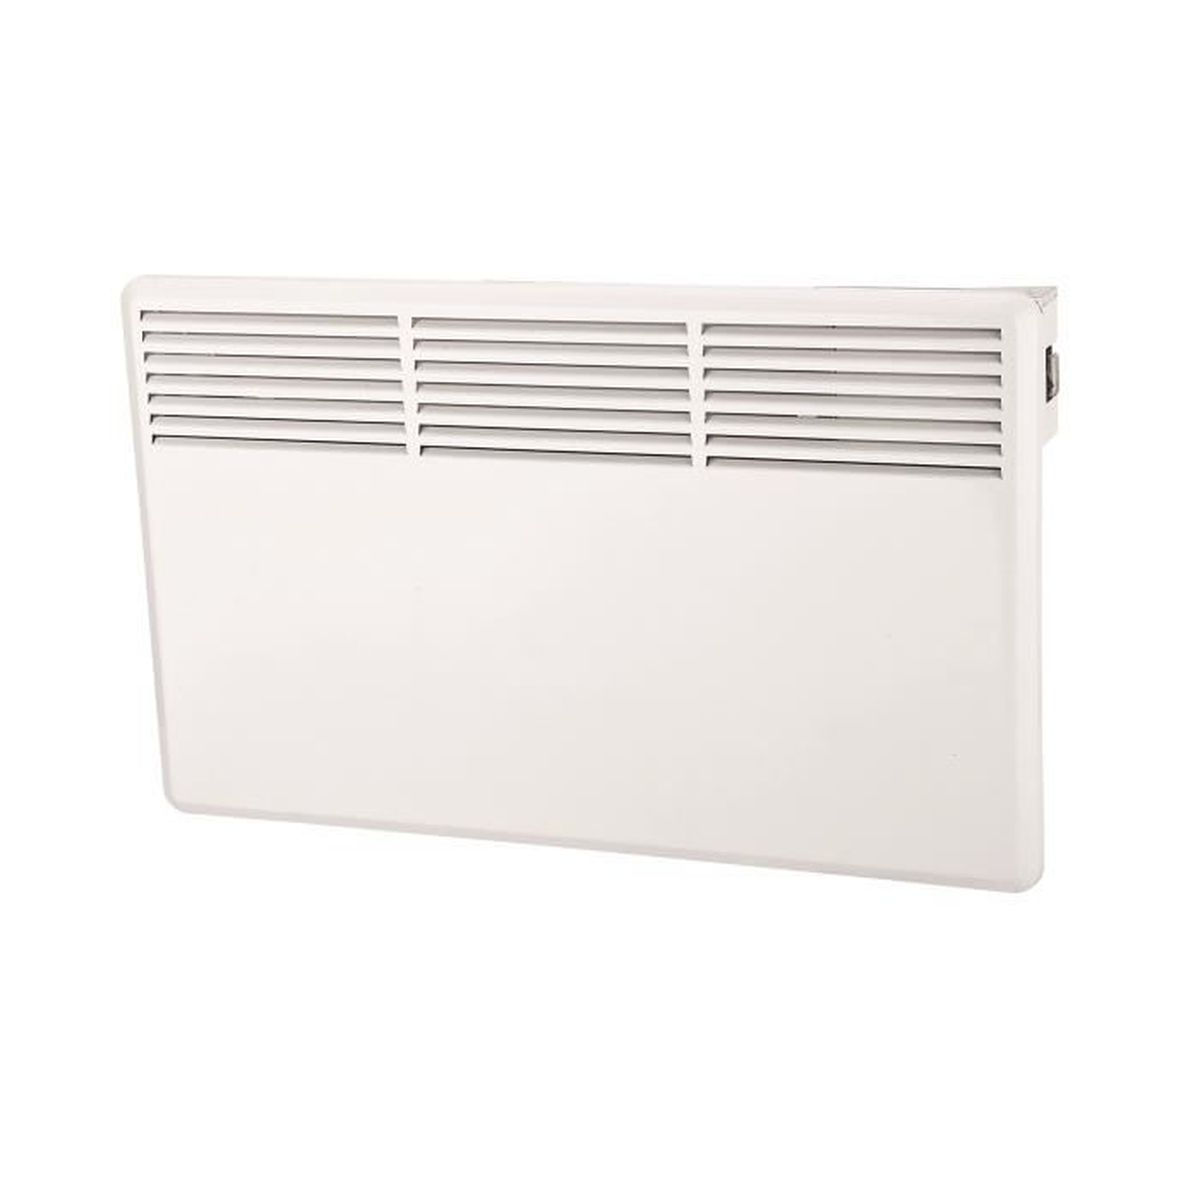 radiateur convecteur electrique 1200w avec thermostat. Black Bedroom Furniture Sets. Home Design Ideas